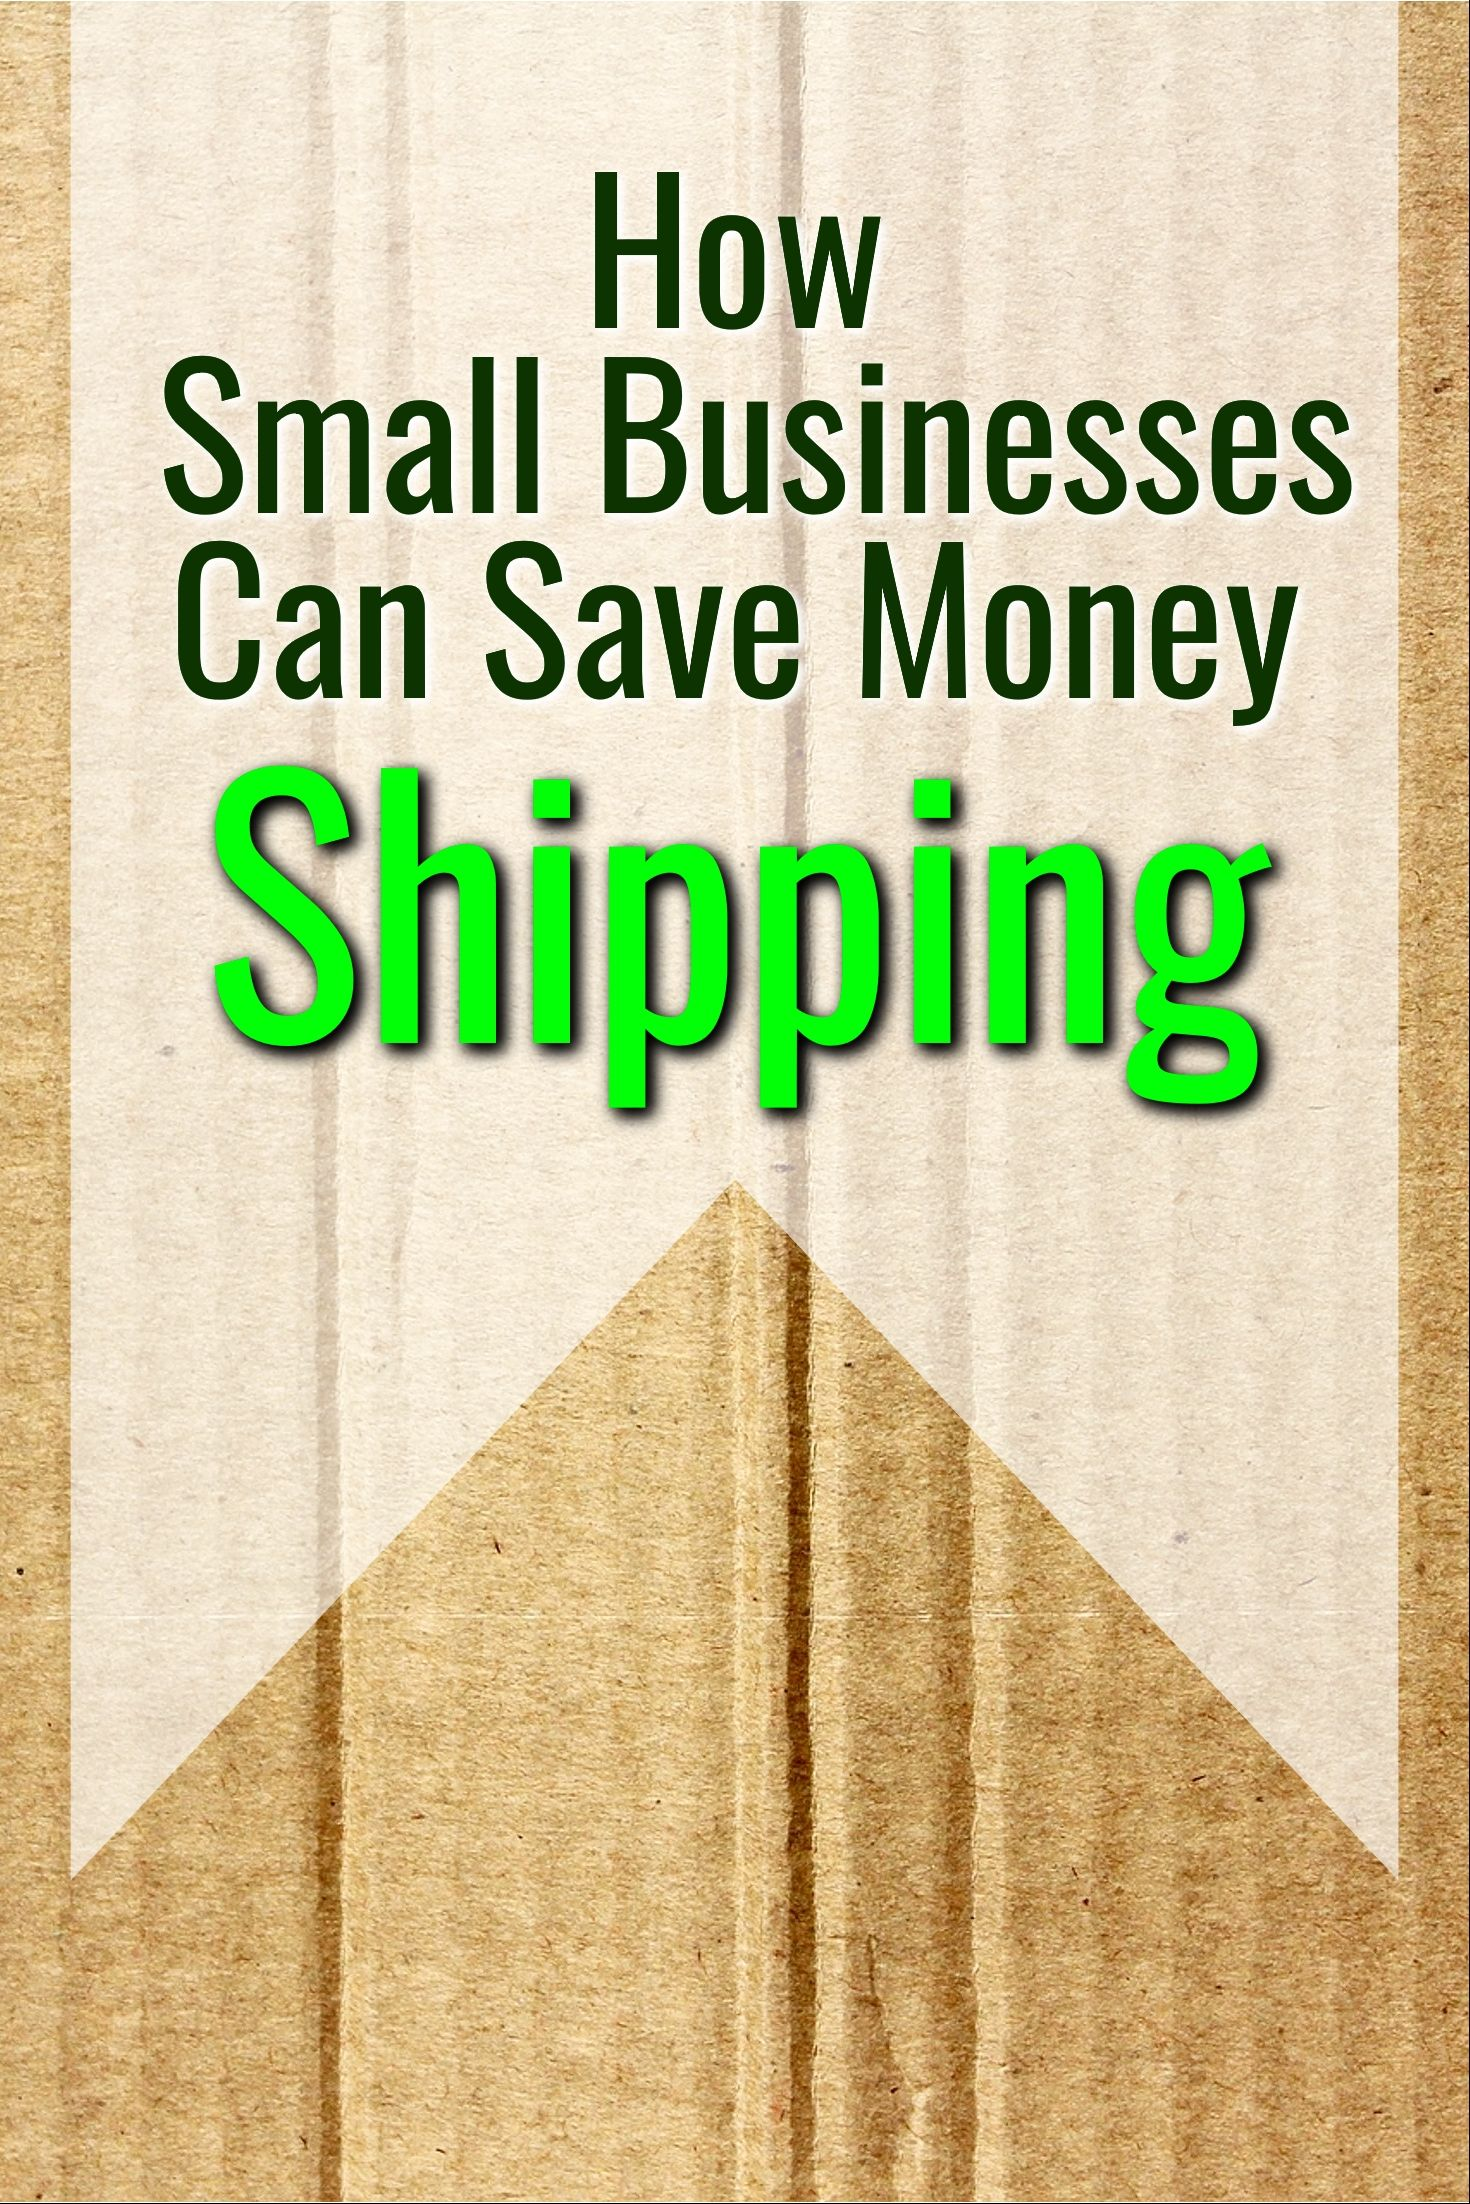 10 Shipping Dos and Don'ts for Small Businesses | Business ...